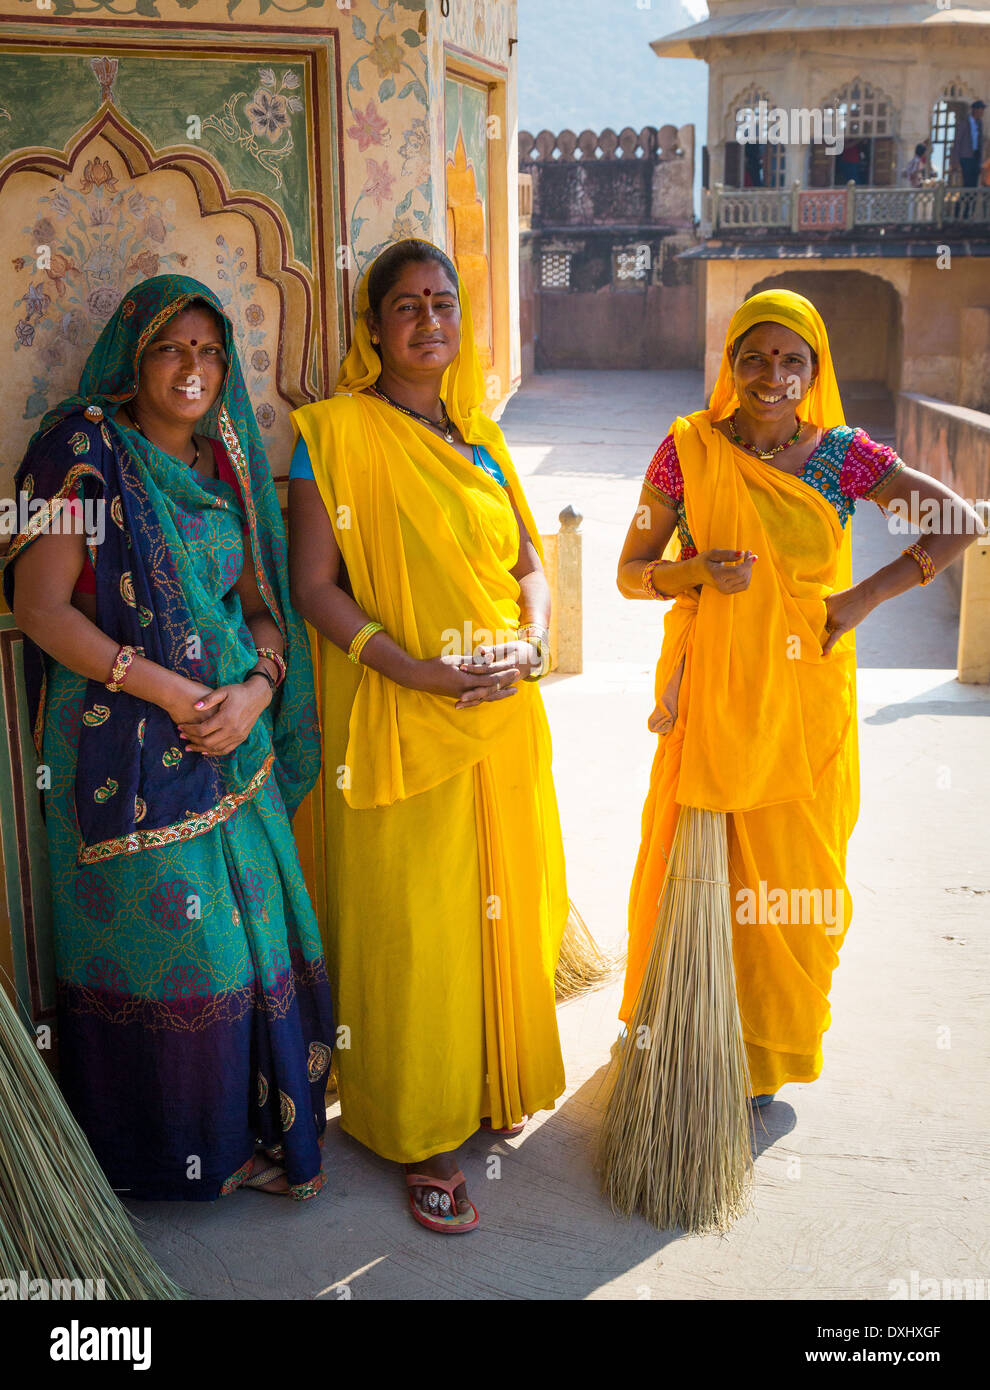 Indian women at Amer Fort, Rajasthan, India - Stock Image